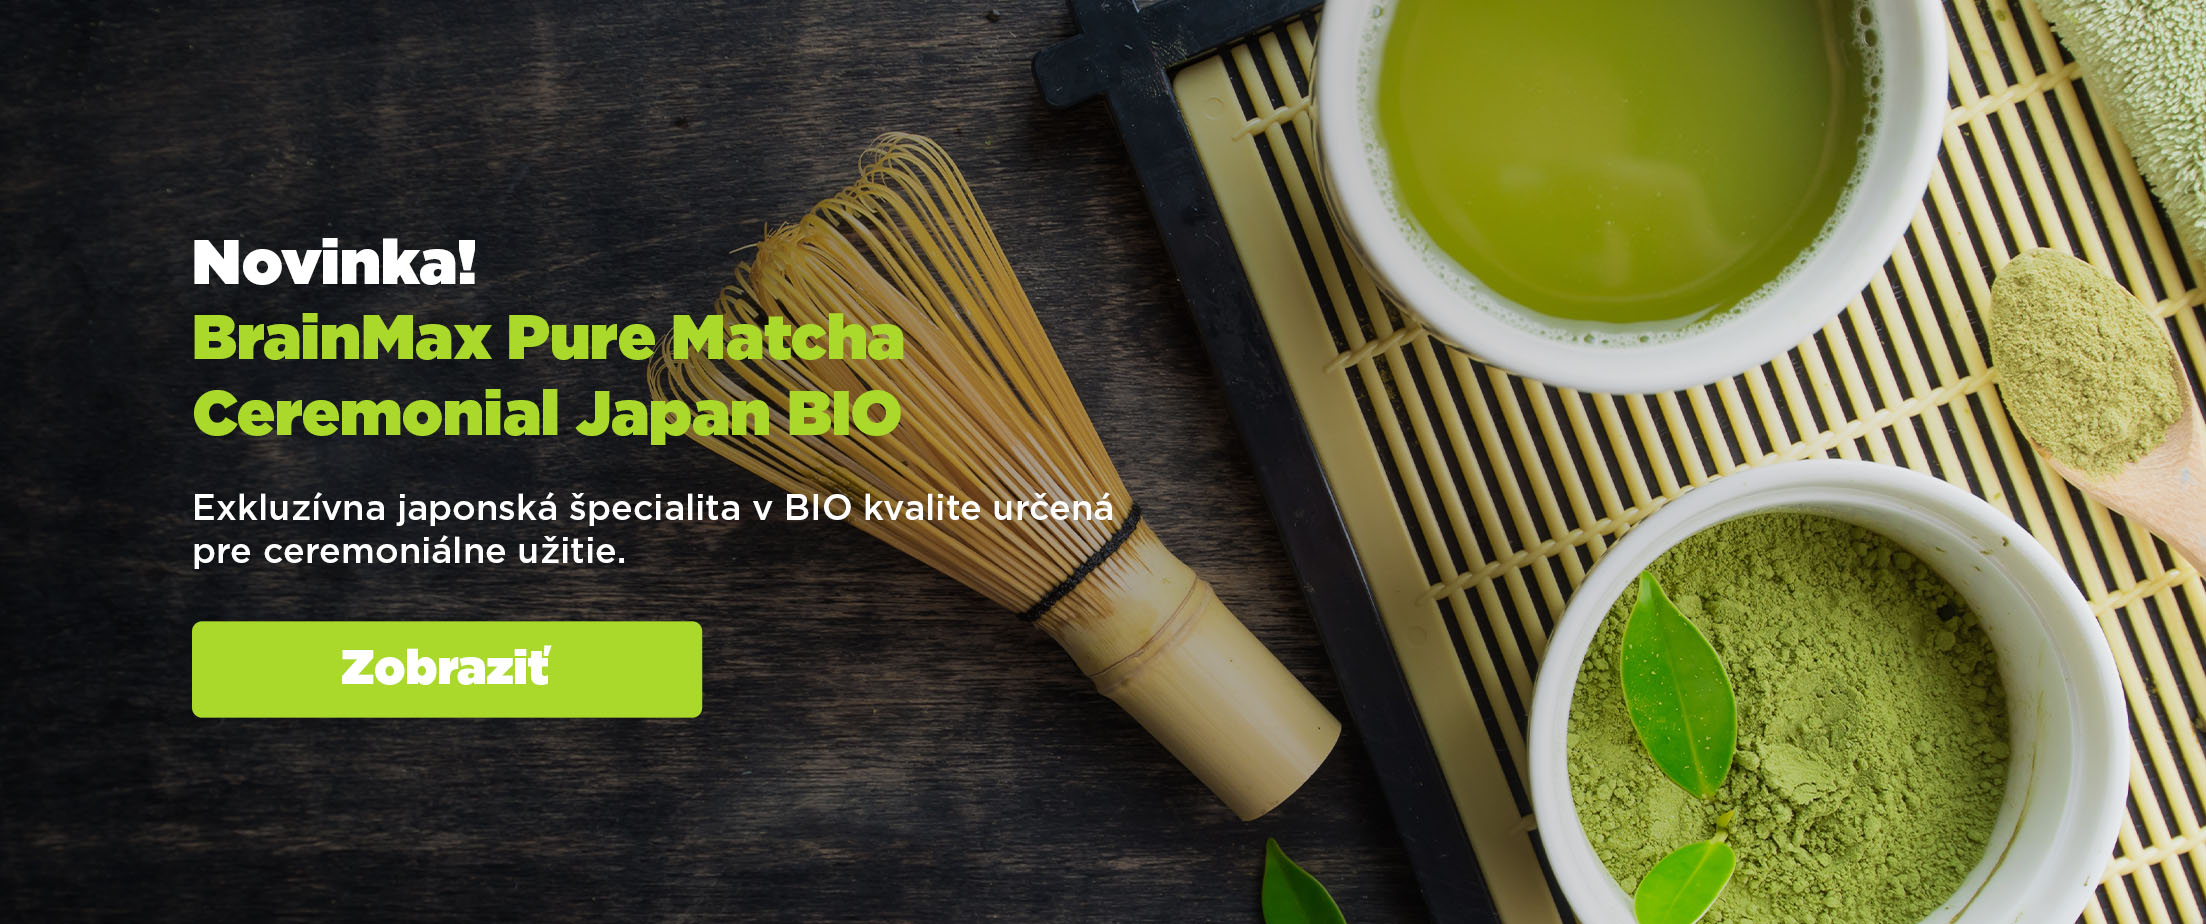 Matcha ceremonial